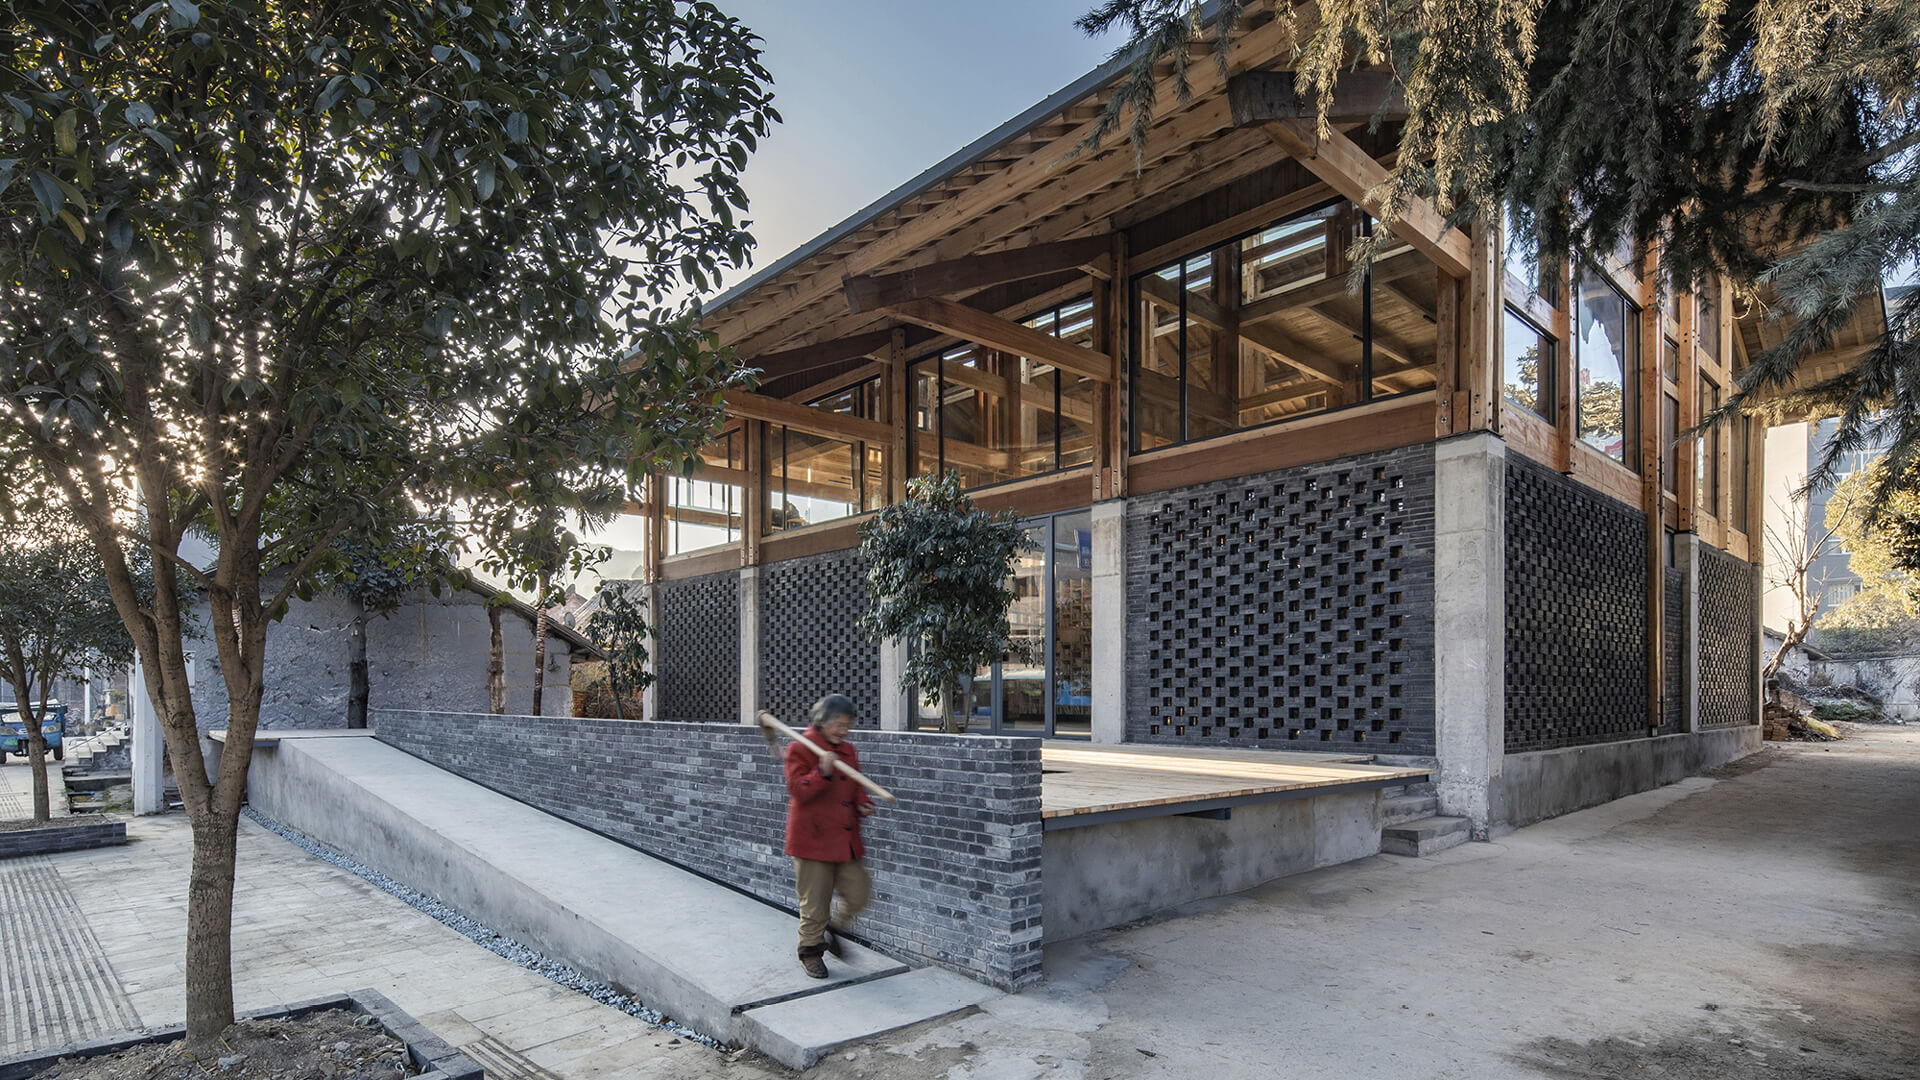 The entrance ramp of the Party and Public Service Center of Yuanheguan Village, in China, designed by ZUO studio | Party and Public Service Center of Yuanheguan Village by LUO Studio | STIRworld